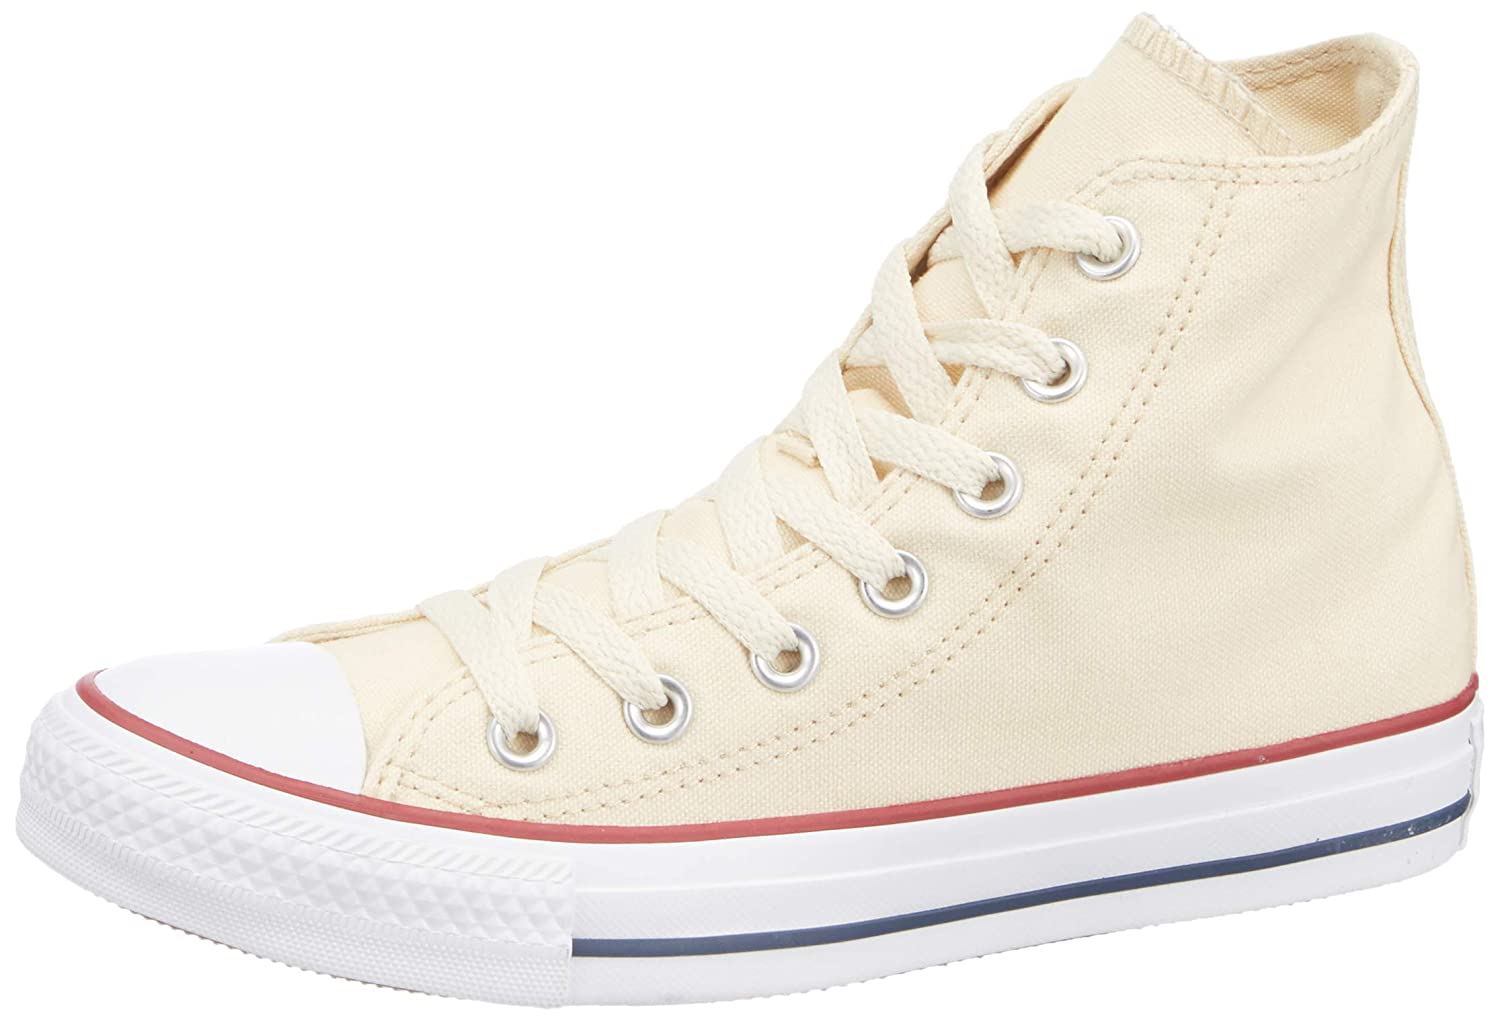 Converse Ctas mixte Core Hi, Baskets mode mixte Ctas adulte 36 EU|Beige (Unbleached White) 4a276f